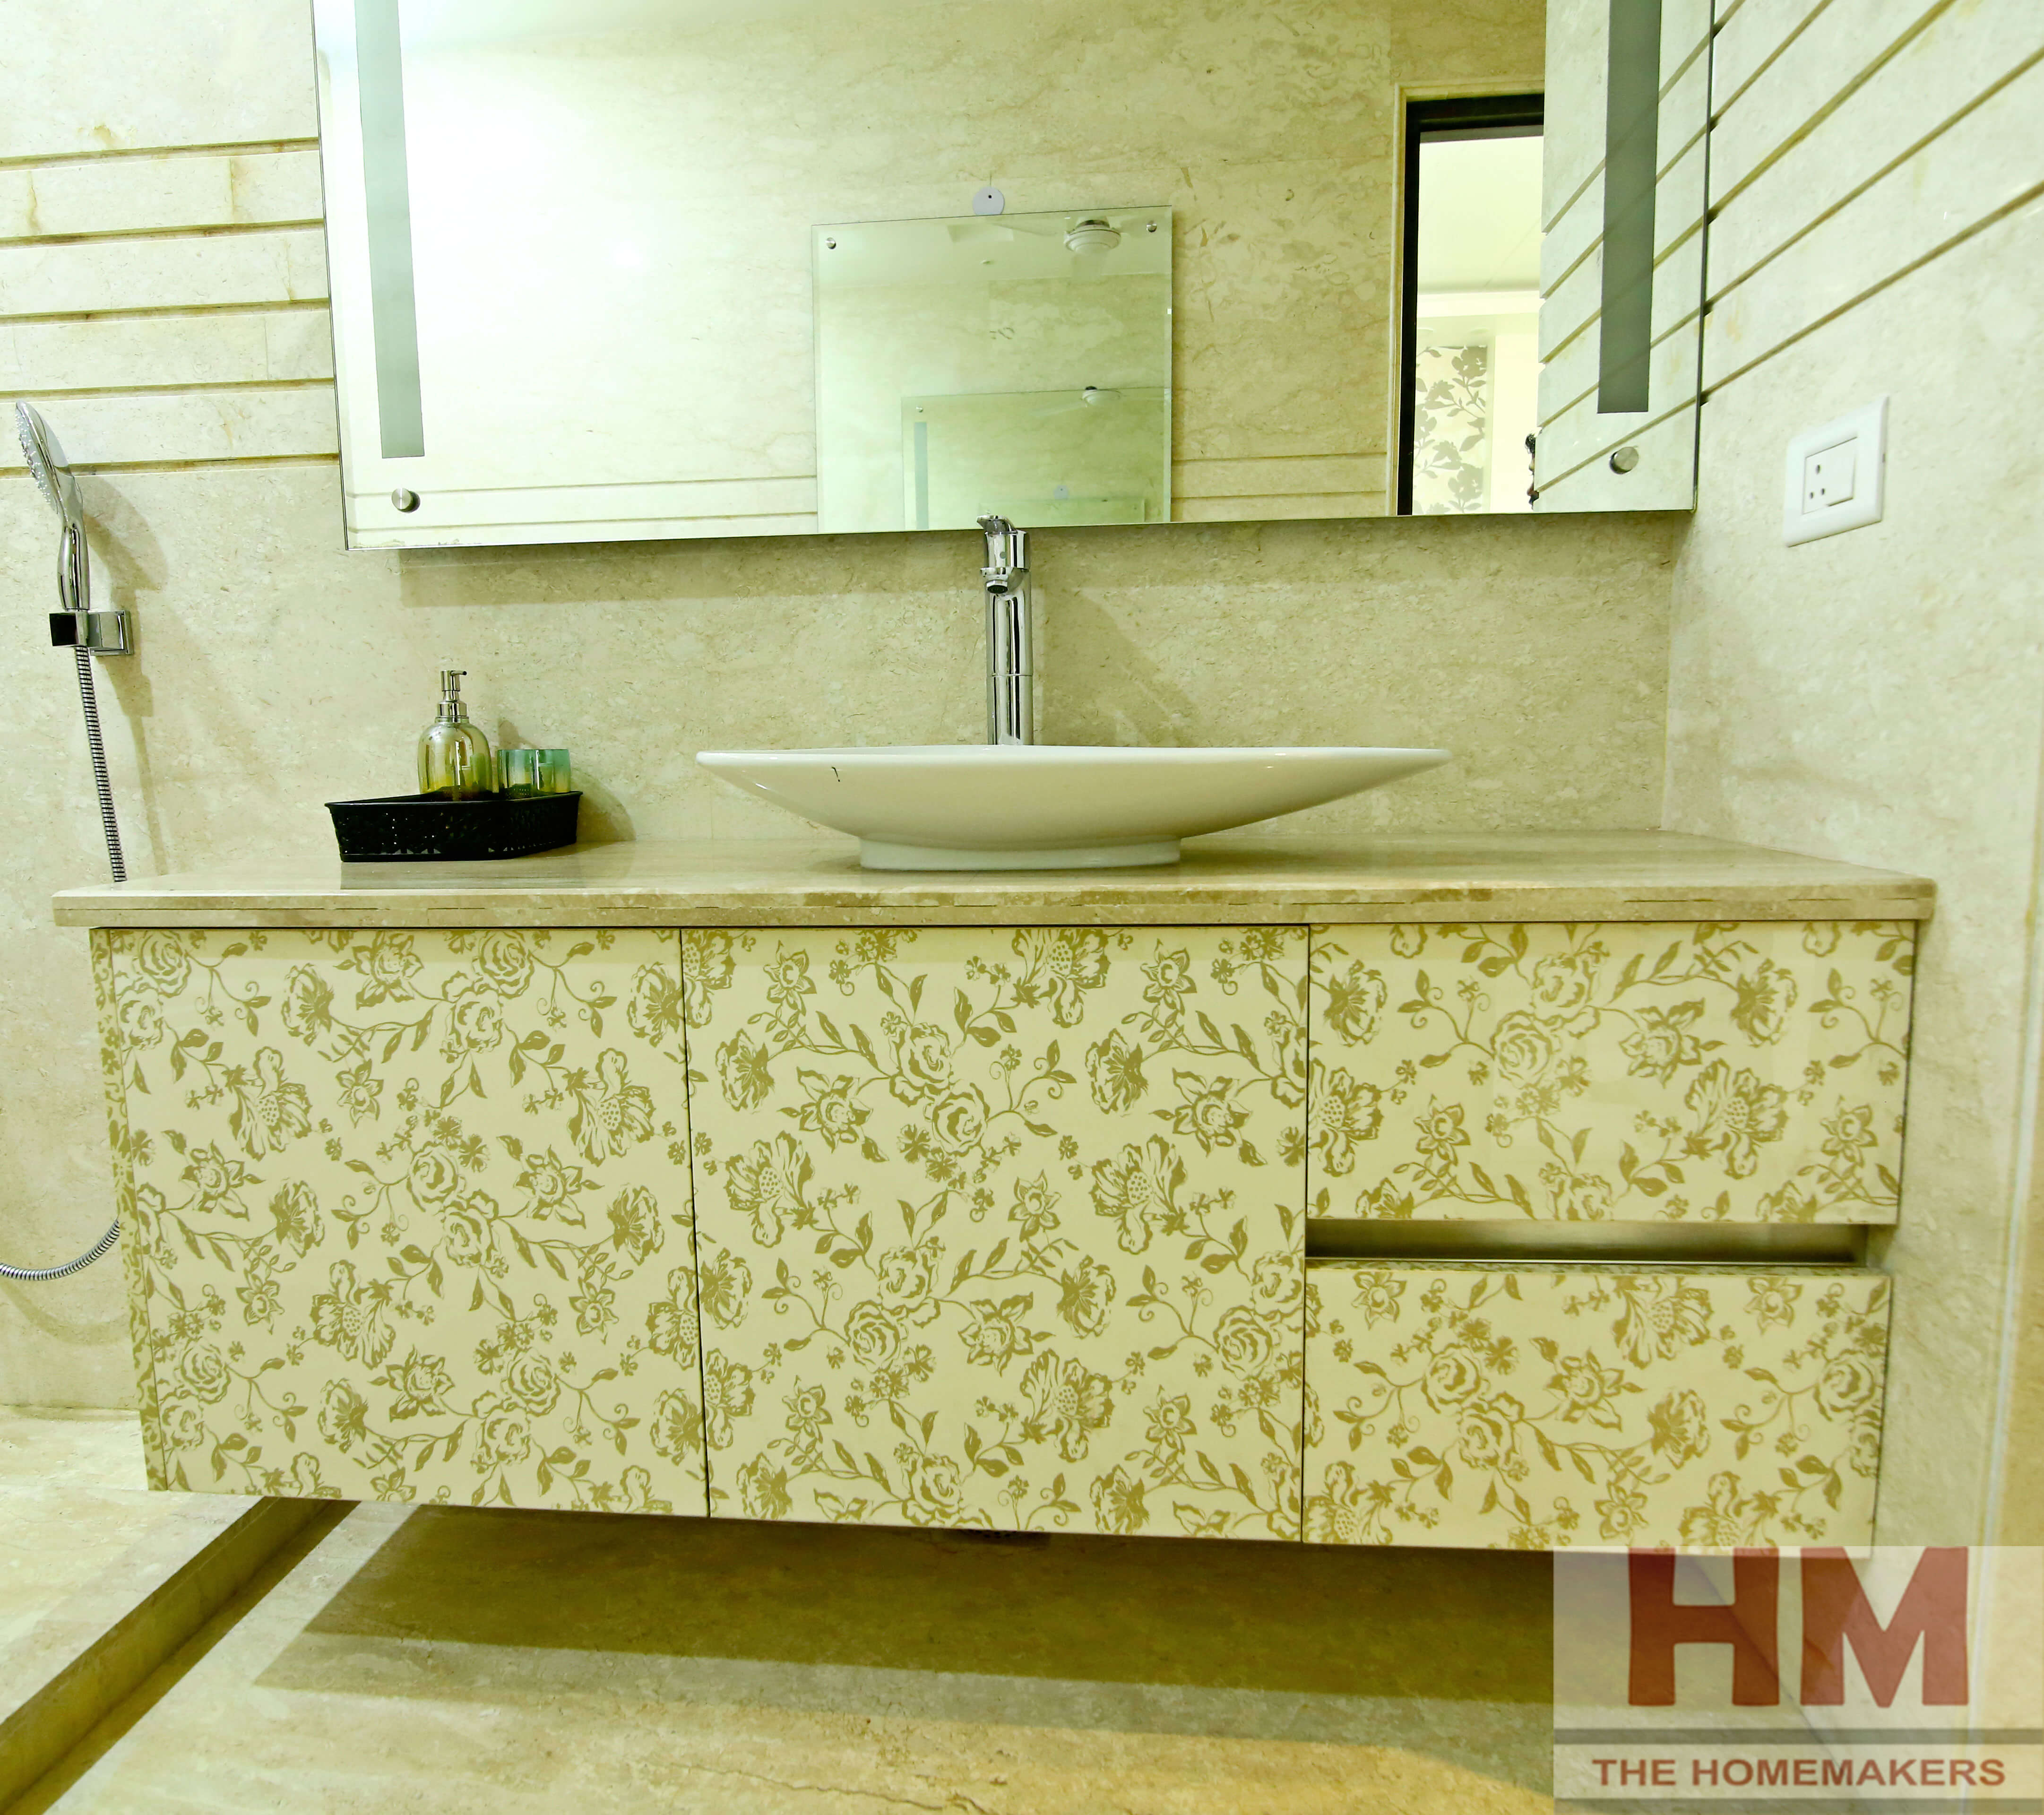 Buy Modular Kitchens And Wardrobes In Gurgaon Delhi Ncr: Bathroom Vanities & Cabinets Manufacturers In Delhi NCR